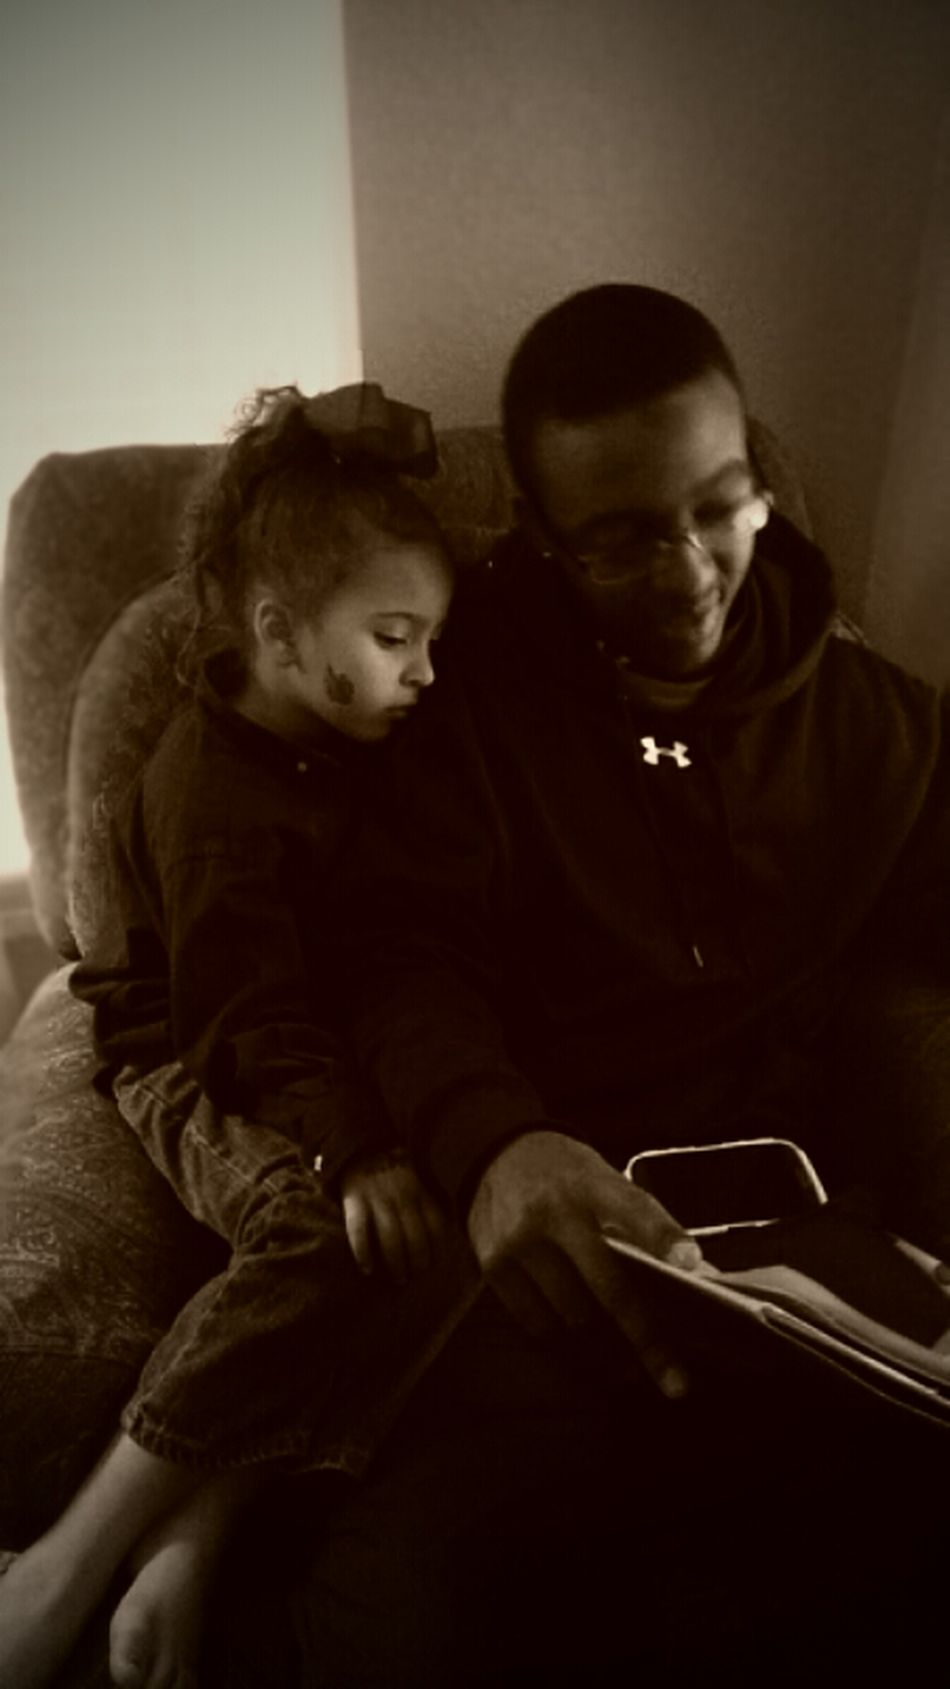 Uncle and Niece time! Relaxing